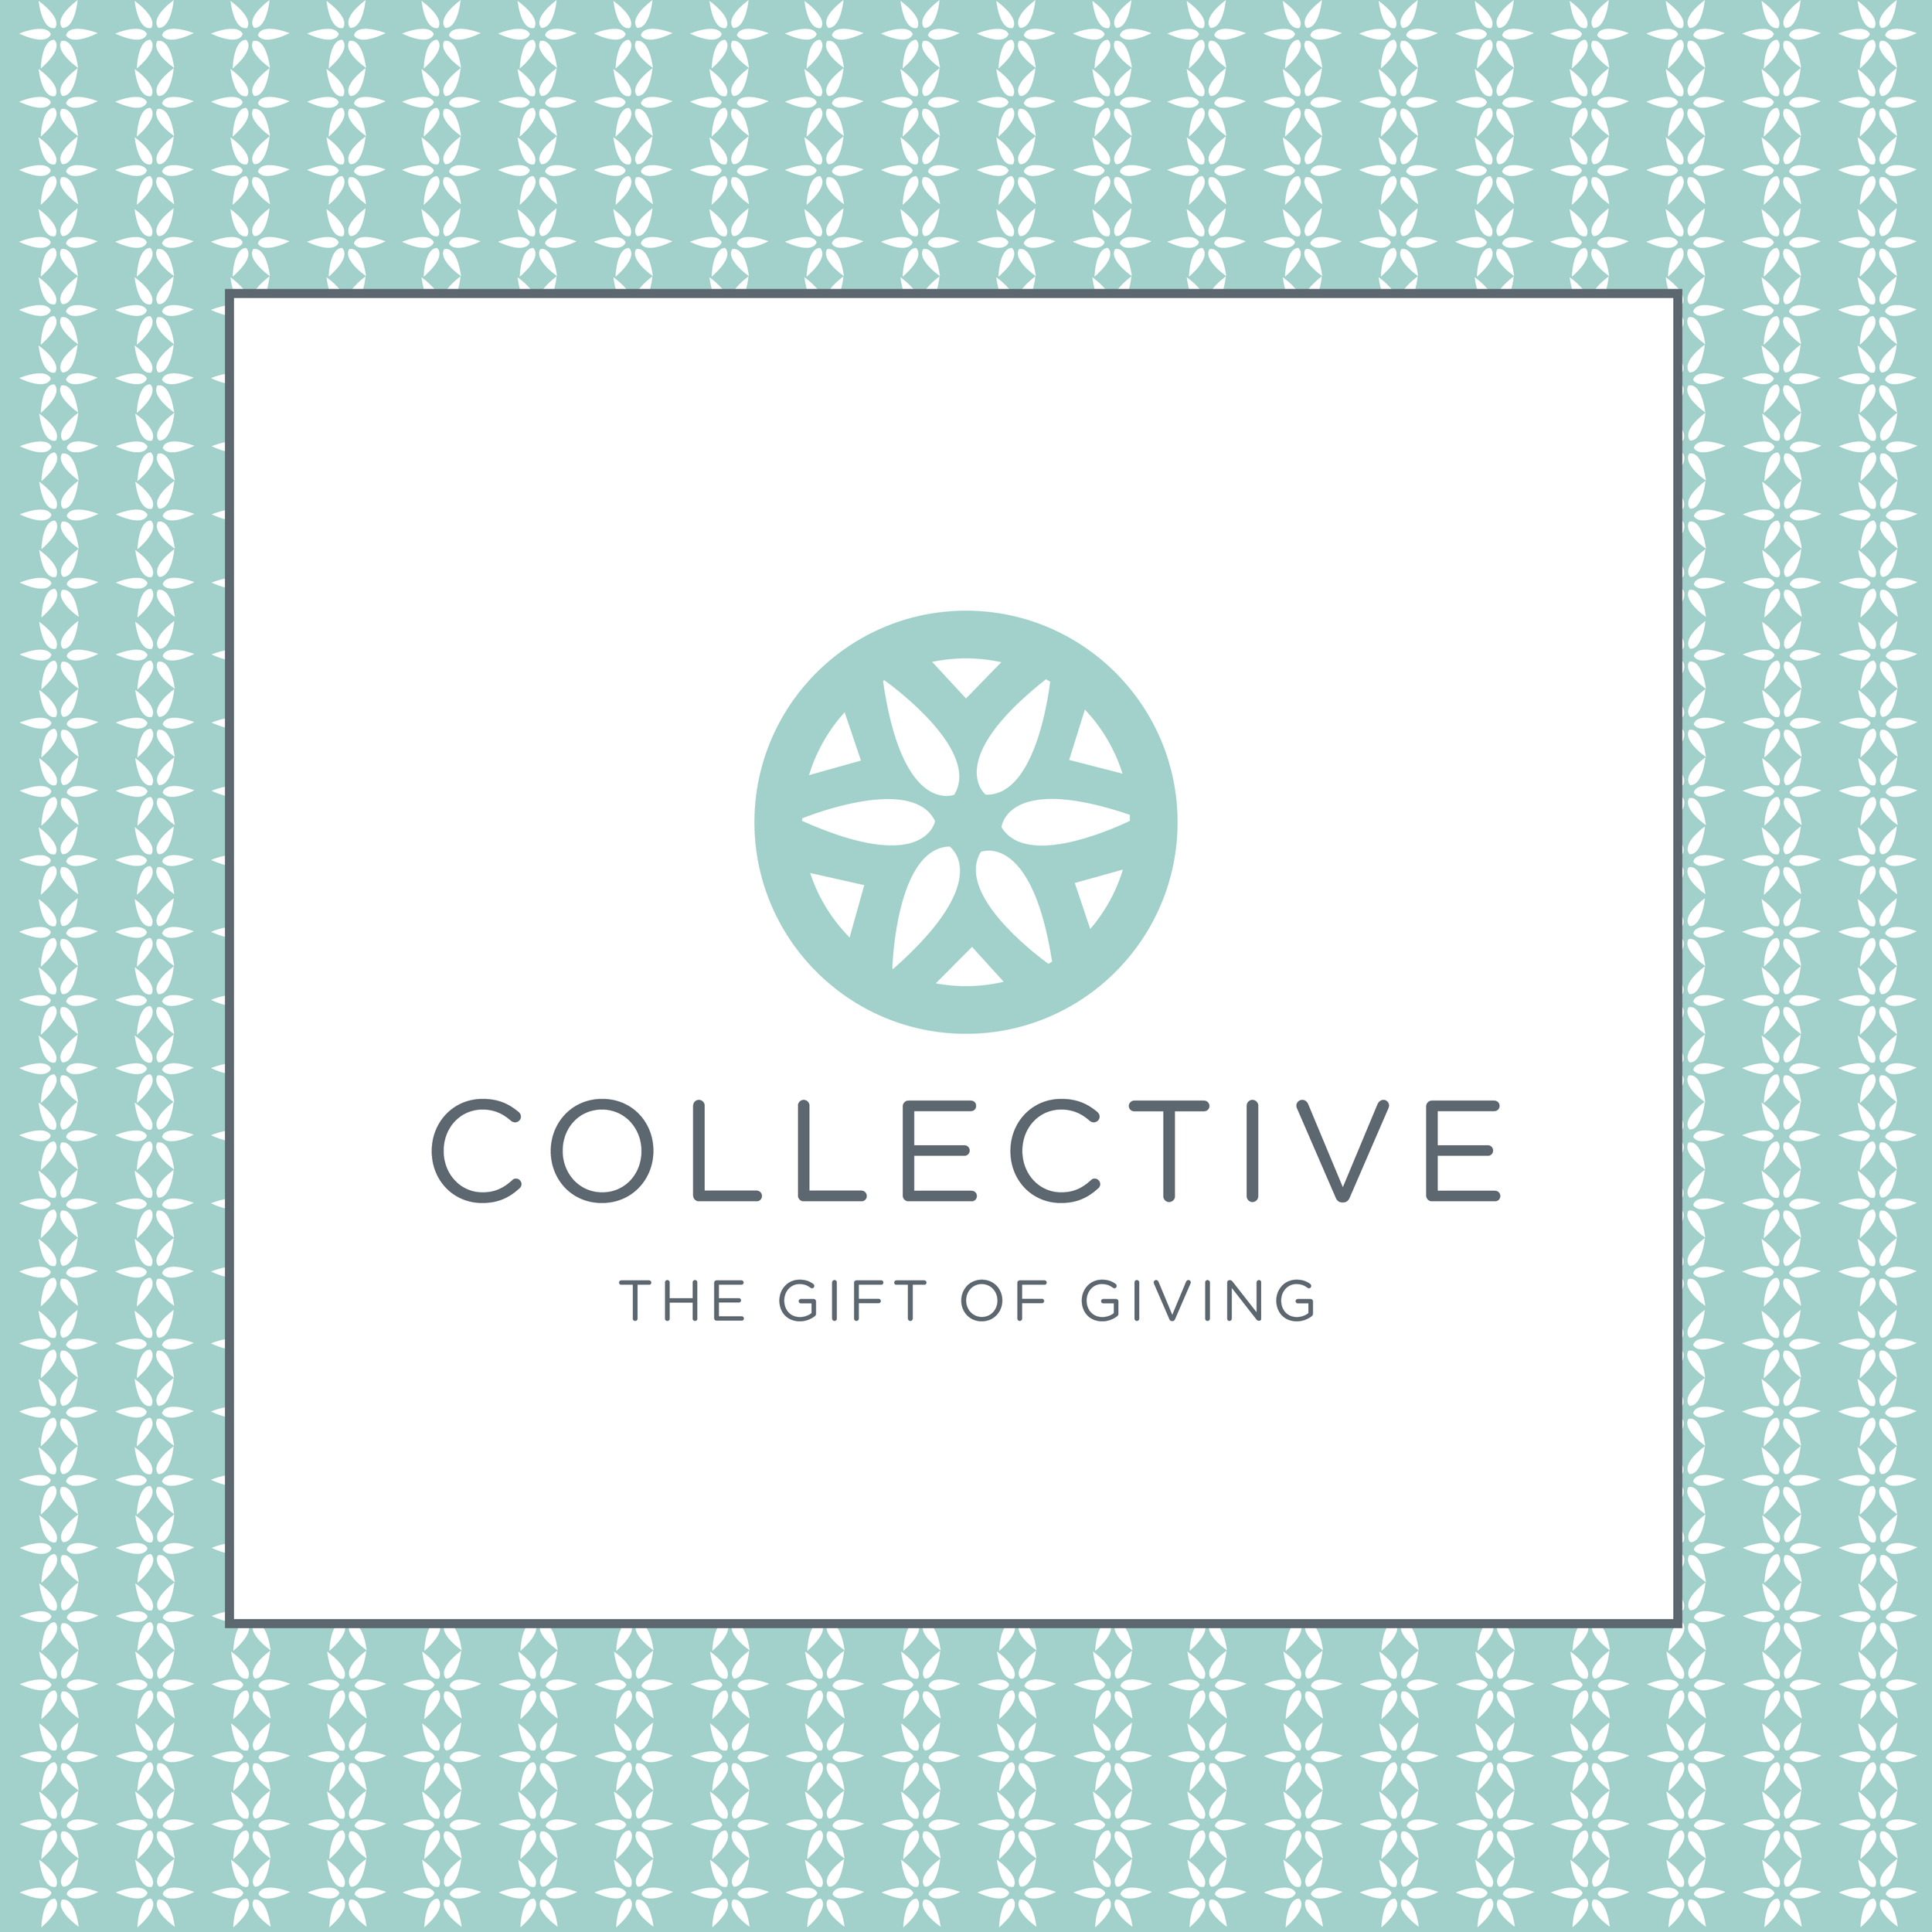 "We've been working on this rebranding for a while now, and I'm absolutely thrilled to launch the new store name and new look for the Collective. Formerly known as Carter and Company, Sarah Thomas, the store owner, was ready for a new look and new branding. We met at a local coffee shop months ago and tossed around ideas. We decided it was also the perfect time to rename the store, and to start fresh and new. The new store name came together that day, and the design quickly followed. After visiting the store, I was inspired by the beautiful medallions on either side of the store door (image below). We loved the idea of incorporating a similar design in the logo and branding.  The Collective's focus is on ""The Gift of Giving,"" and Sarah's store truly has the perfect gifts for ALL ages. Everything about the Collective and Sarah's style is fabulous—you just walk in and you're immediately in a better mood. Every time I visit, I'm amazed at the new inventory. It just keeps getting better and better...  The Collective is connected to the Holiday Place in the heart of Spring Hill. Definitely a must-see in Mobile and Spring Hill."